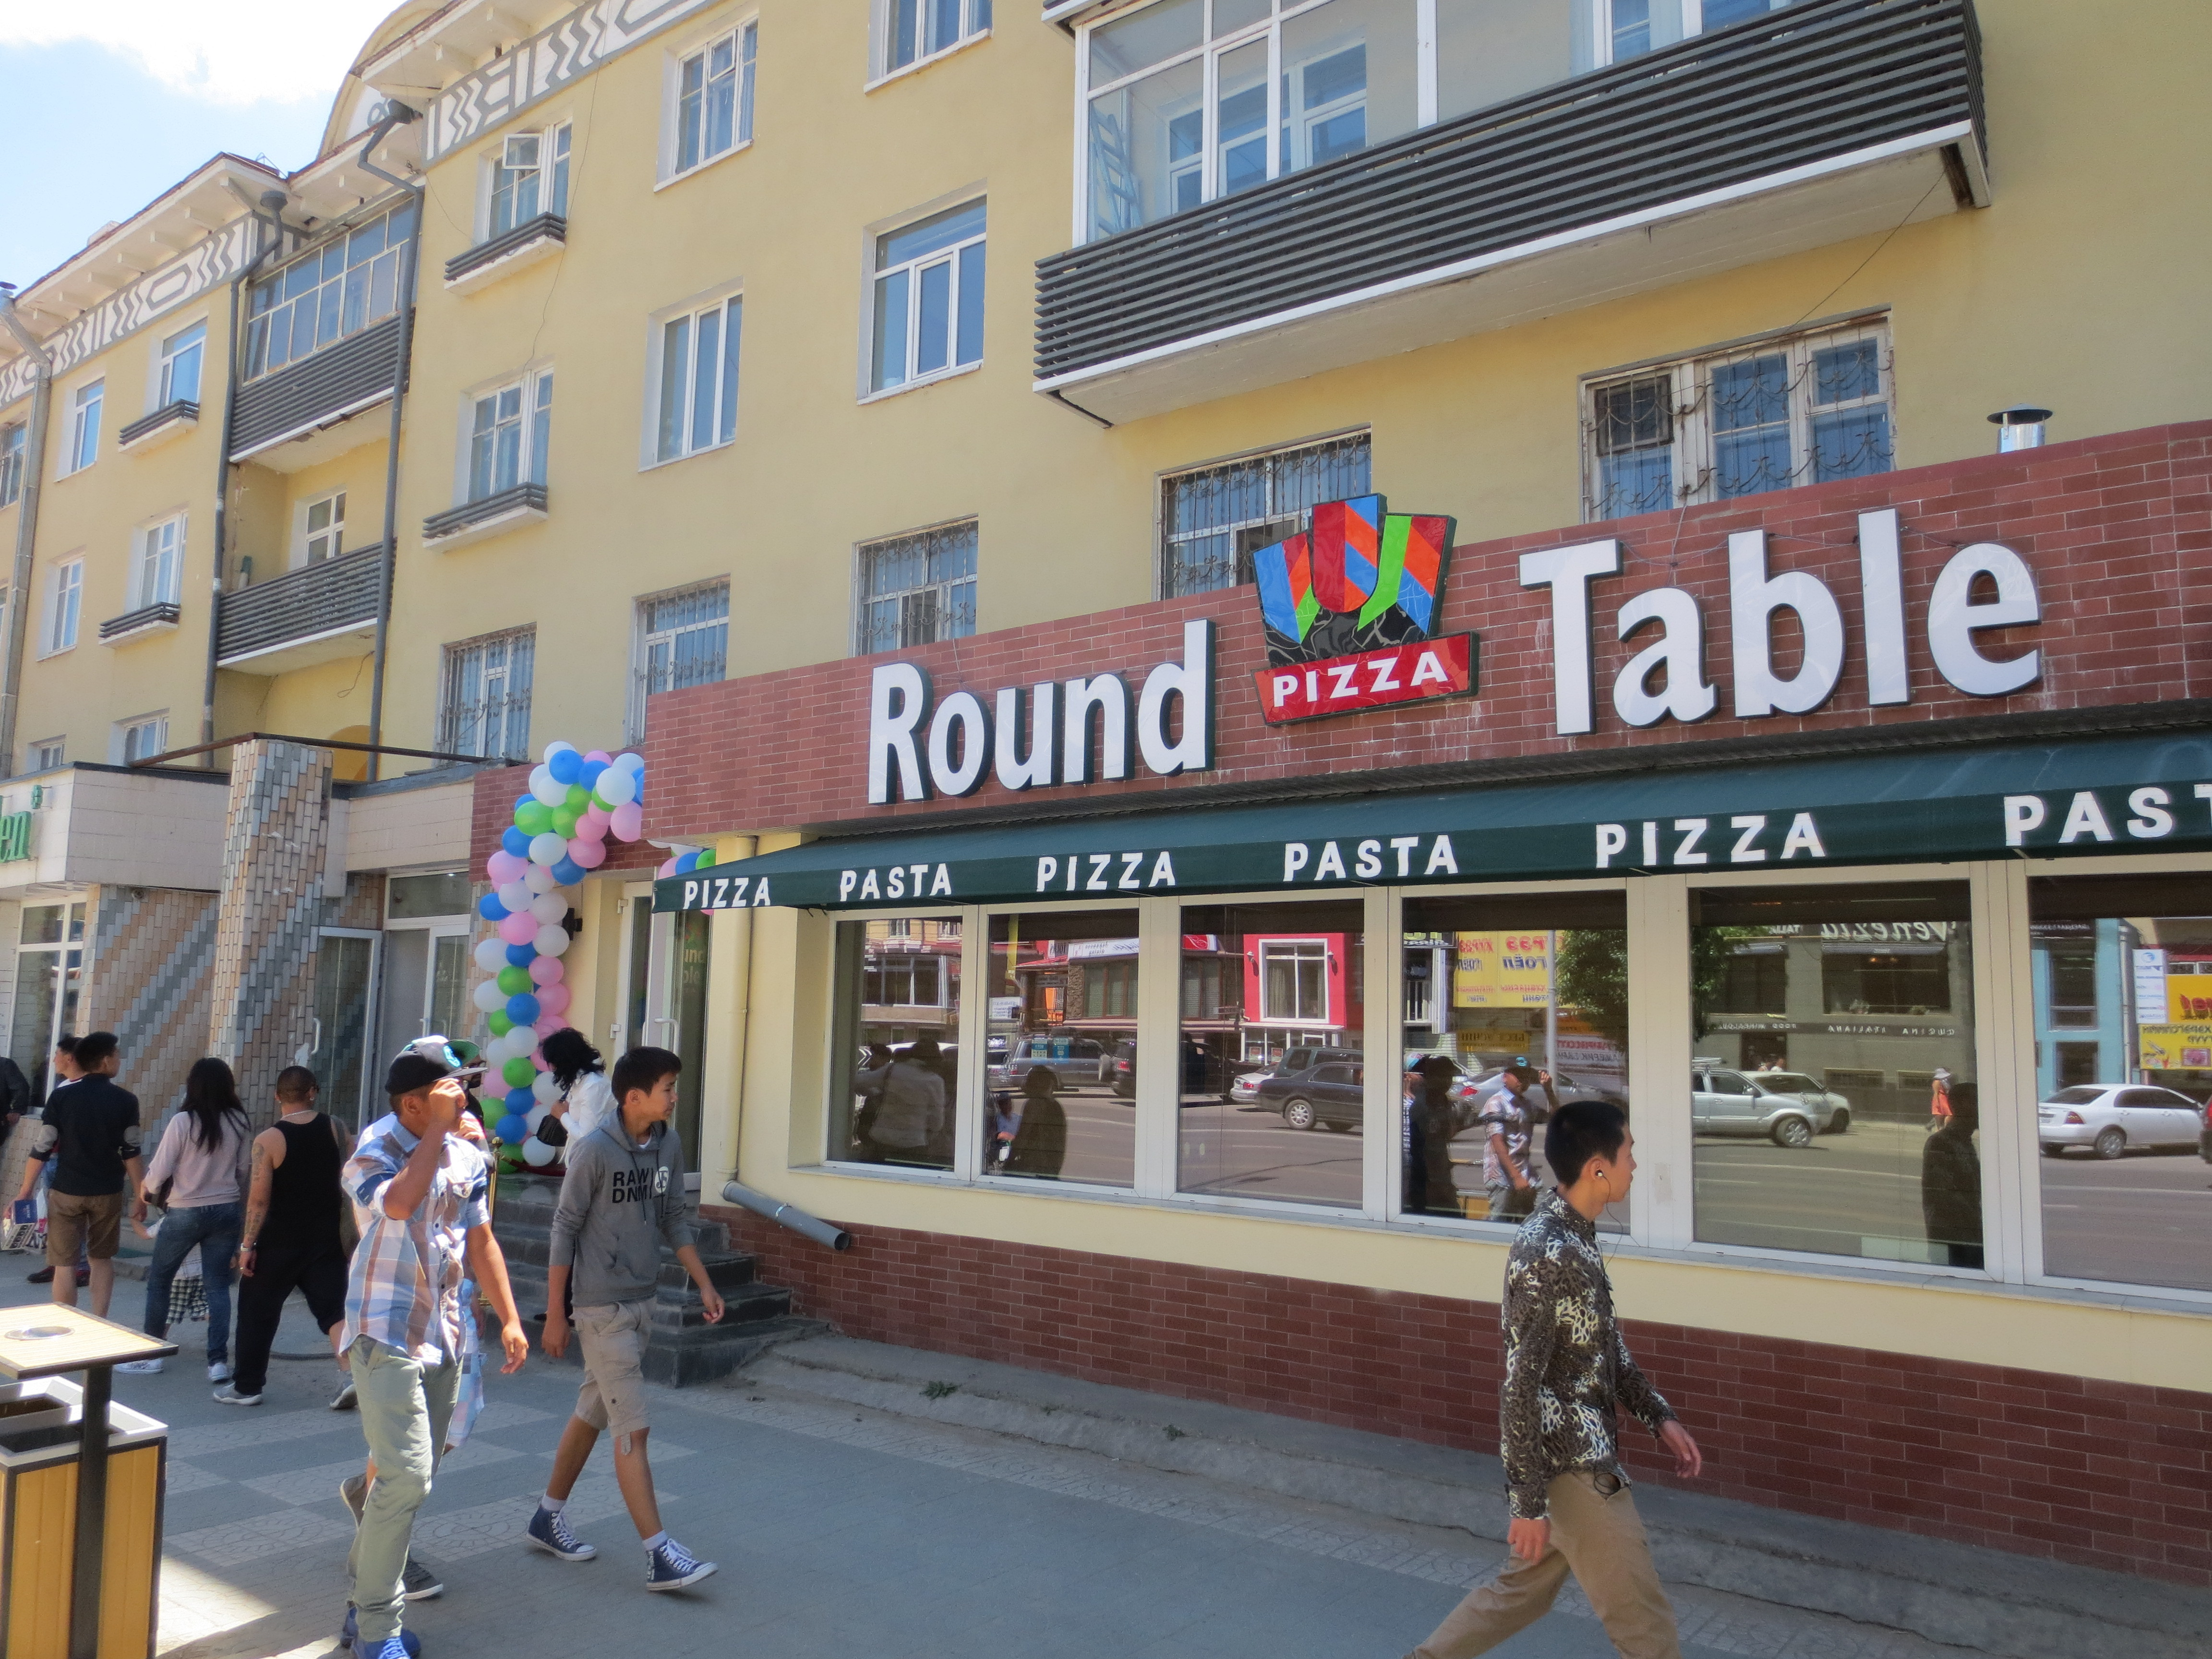 Round Table Pizza Opens Its First Restaurant In Mongolia Business Wire - Round table pizza corporate